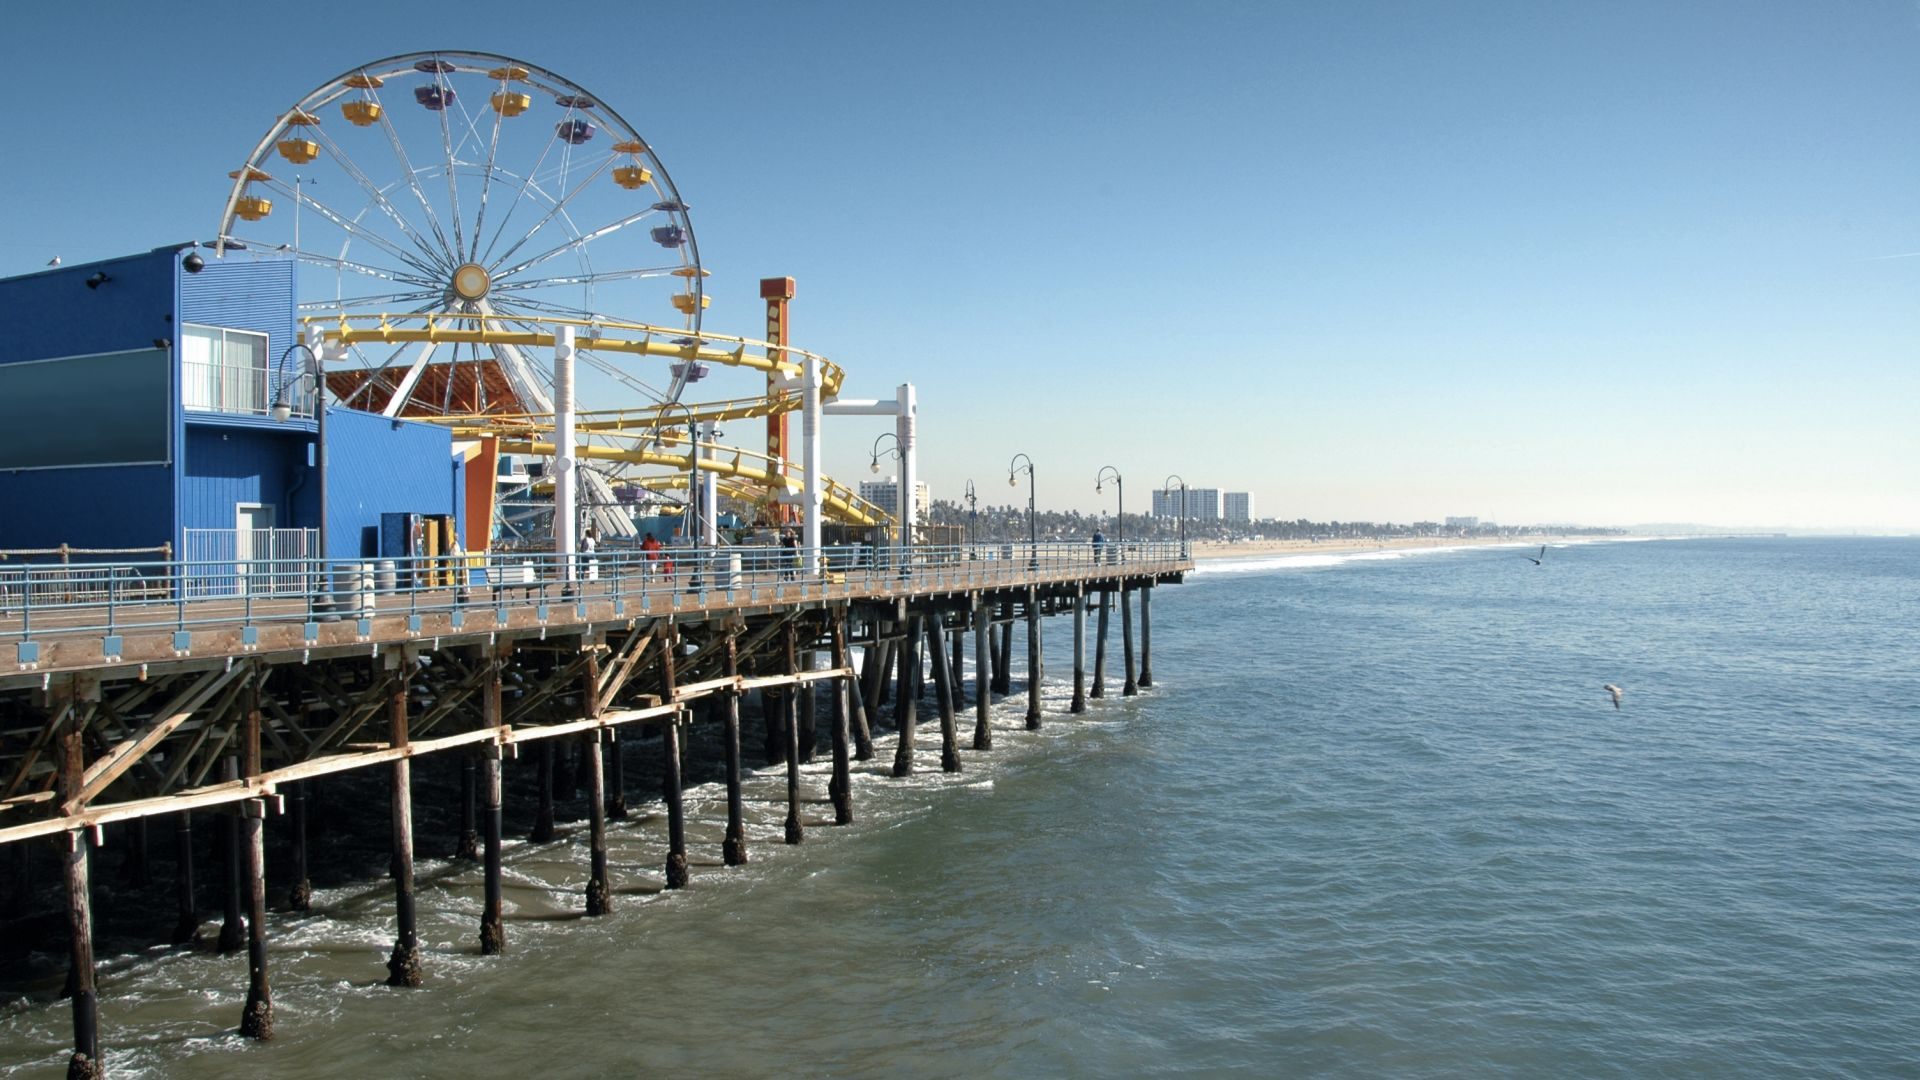 Santa Monica Pier showing the Ferris Wheel and the water